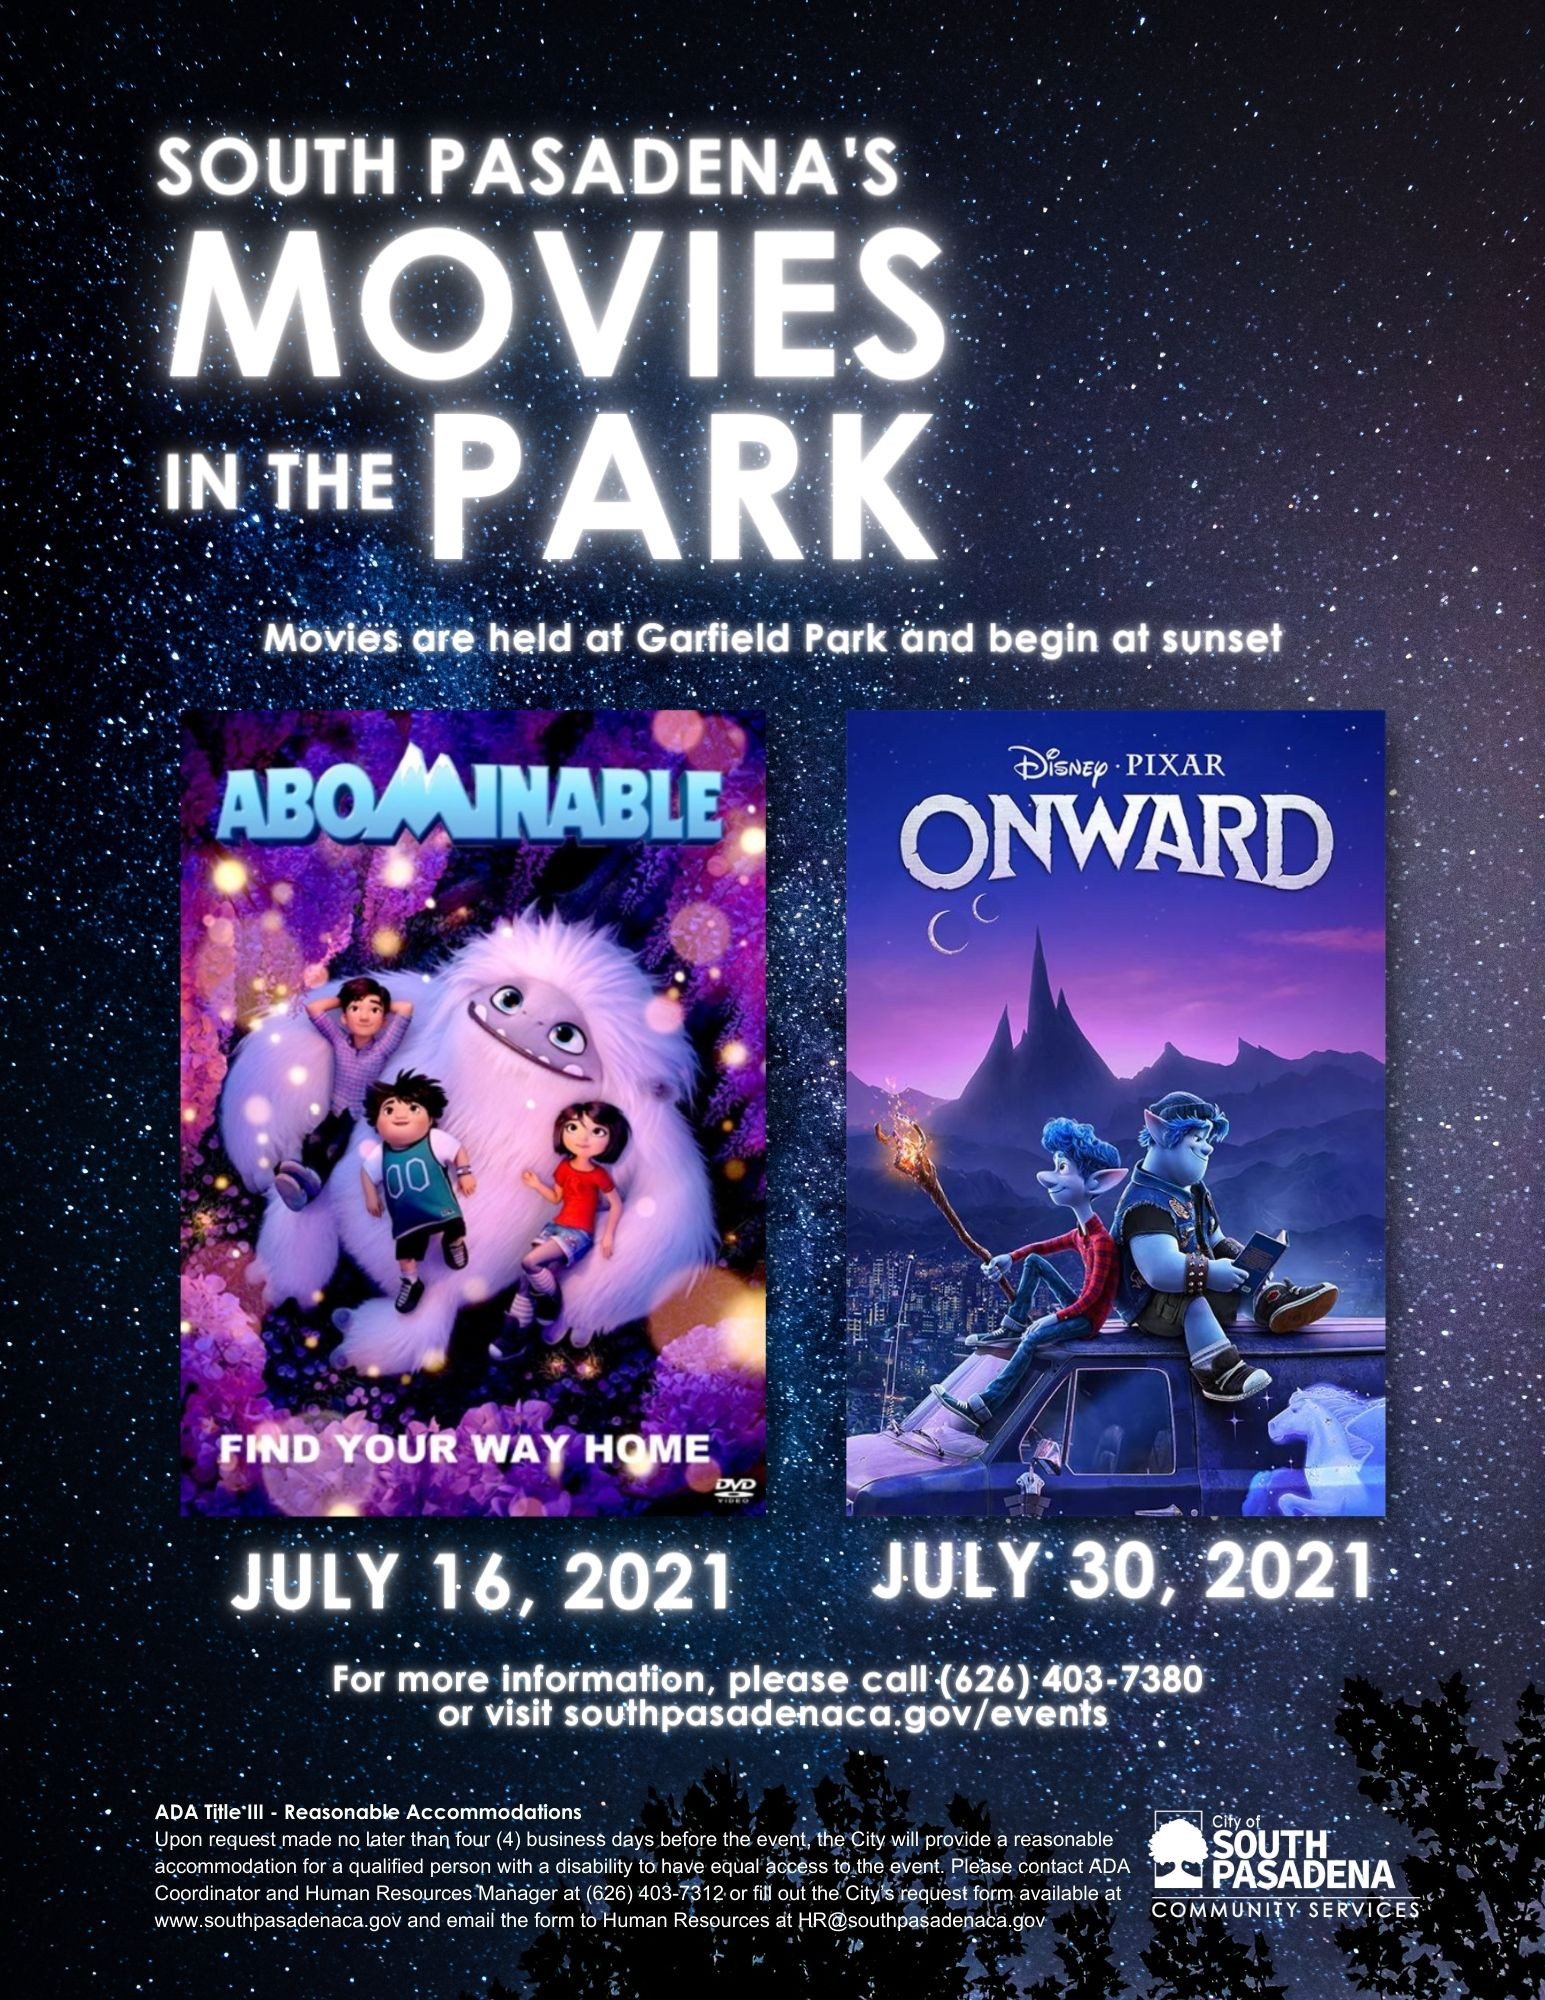 south-pasadena-news-07-09-2021-arts-are-essential-Movies in the Park